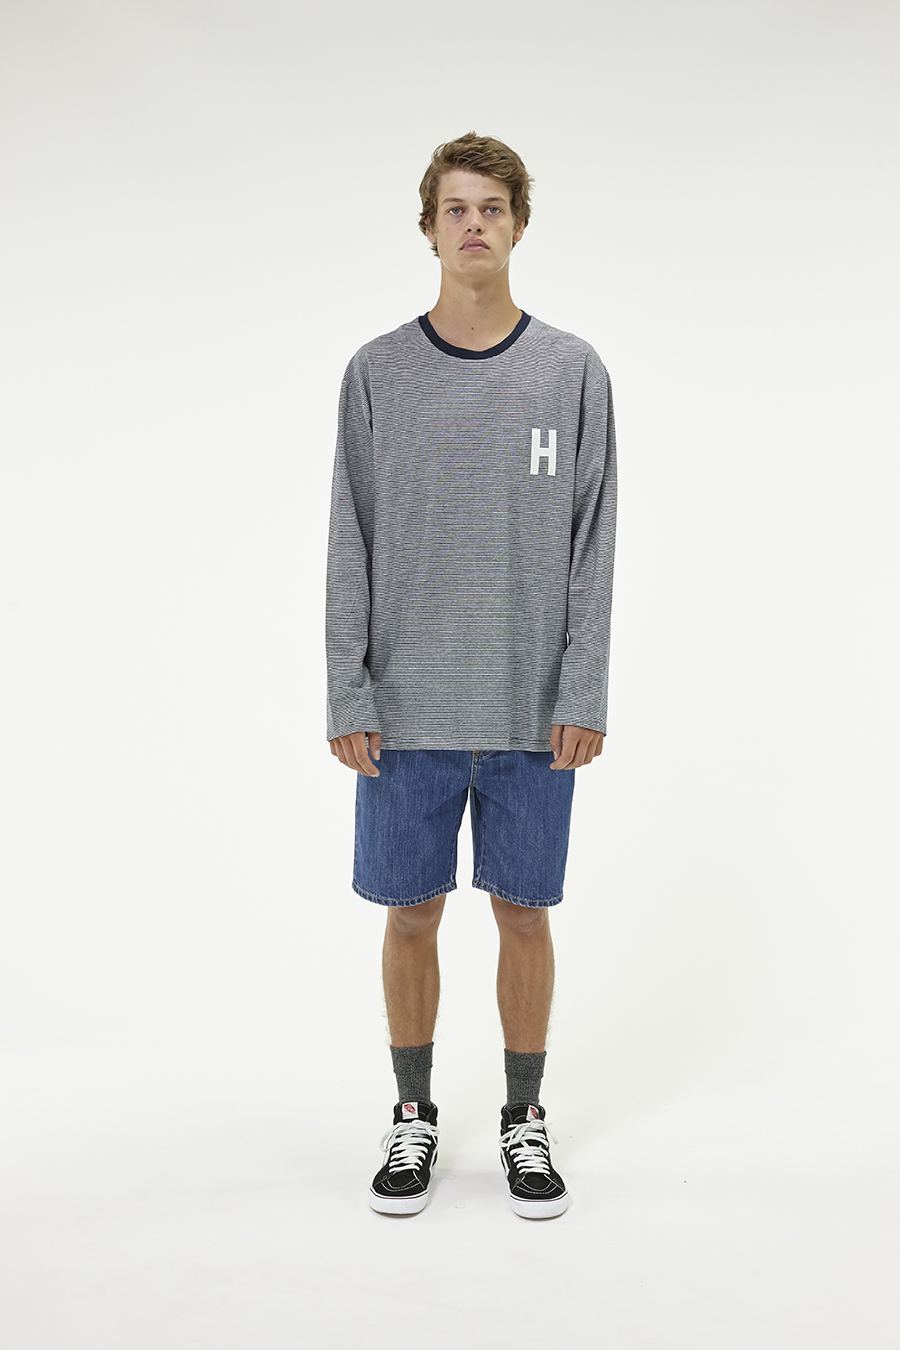 Huffer_Q3-16_M-Weekend-LS-Tee_Navy-01